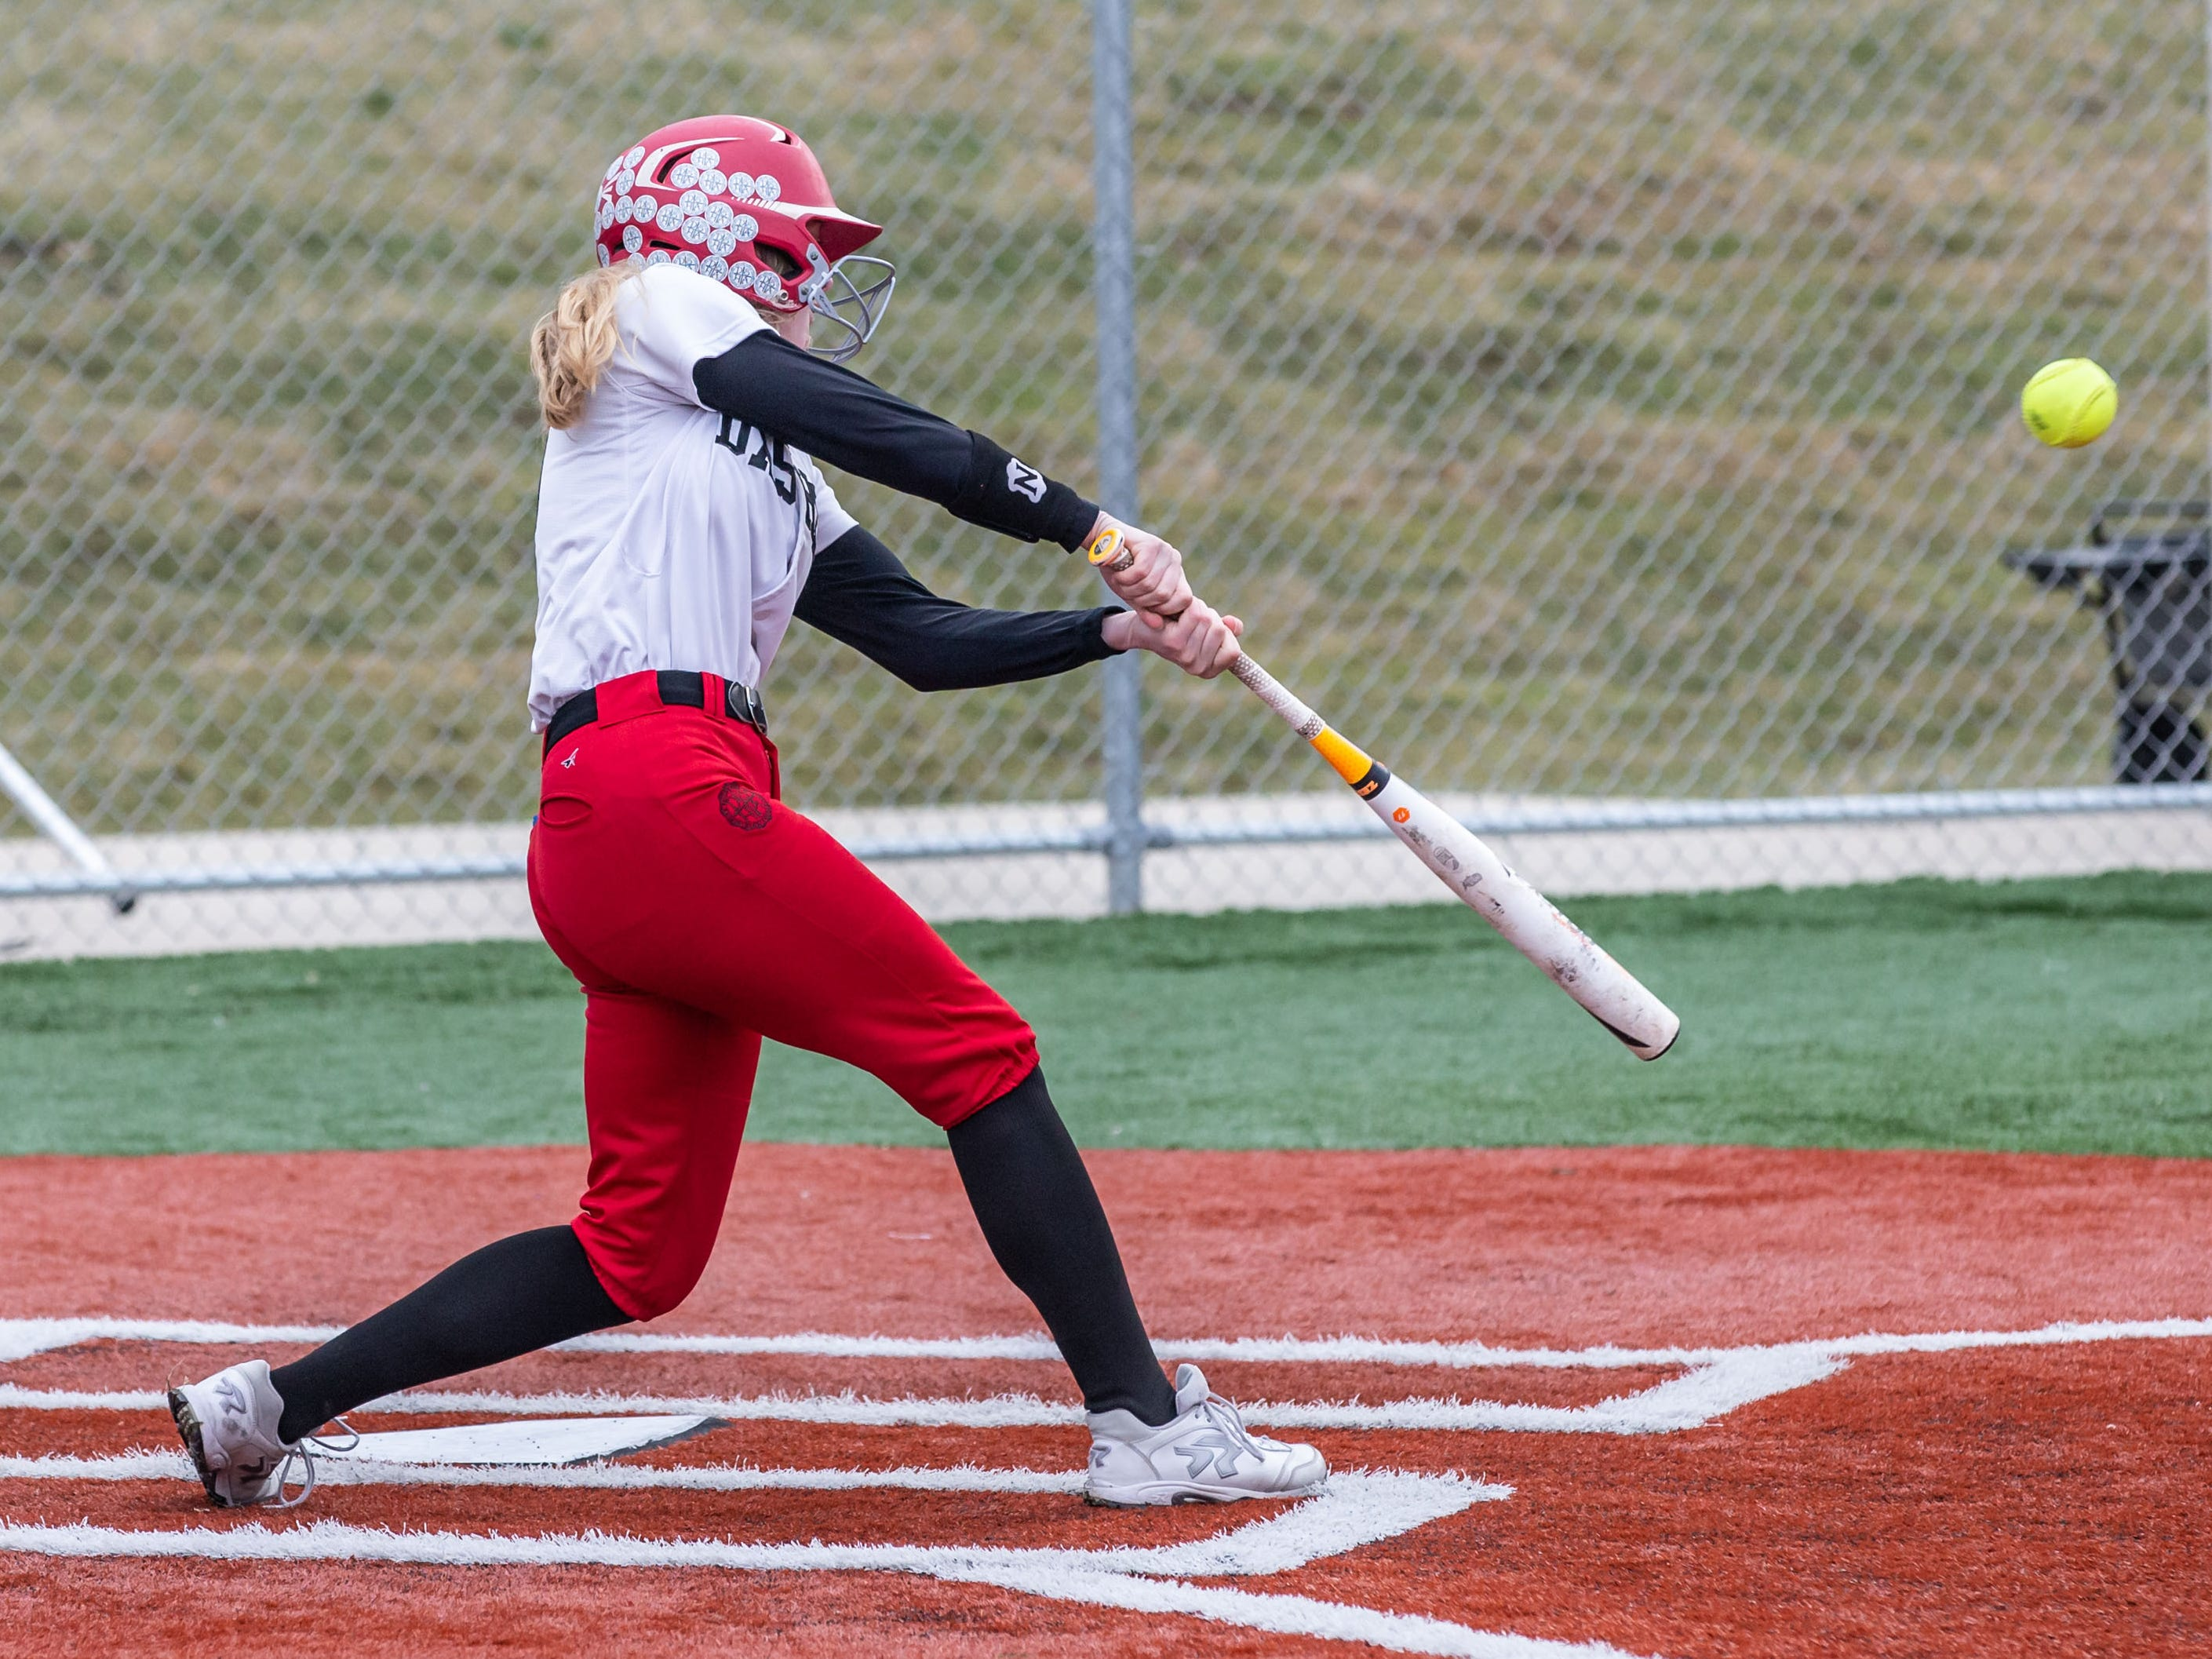 DSHA's Jackie Dooge connects for a triple during the game at Wauwatosa West on Wednesday, April 17, 2019.